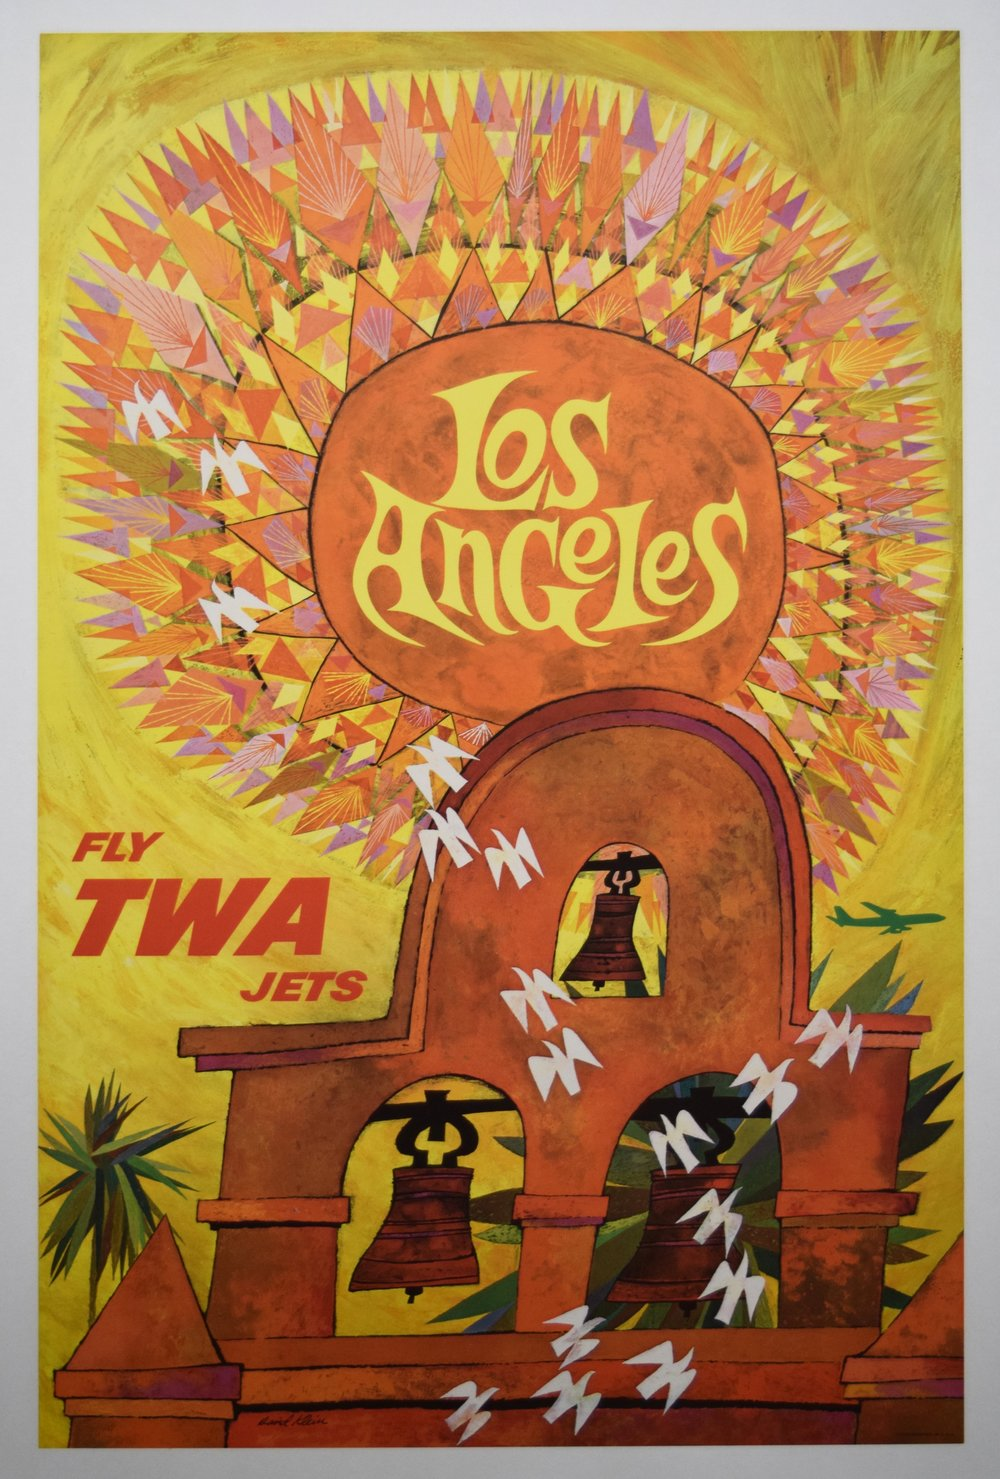 Airline_TWA_Los_Angeles_David_Klein.jpg